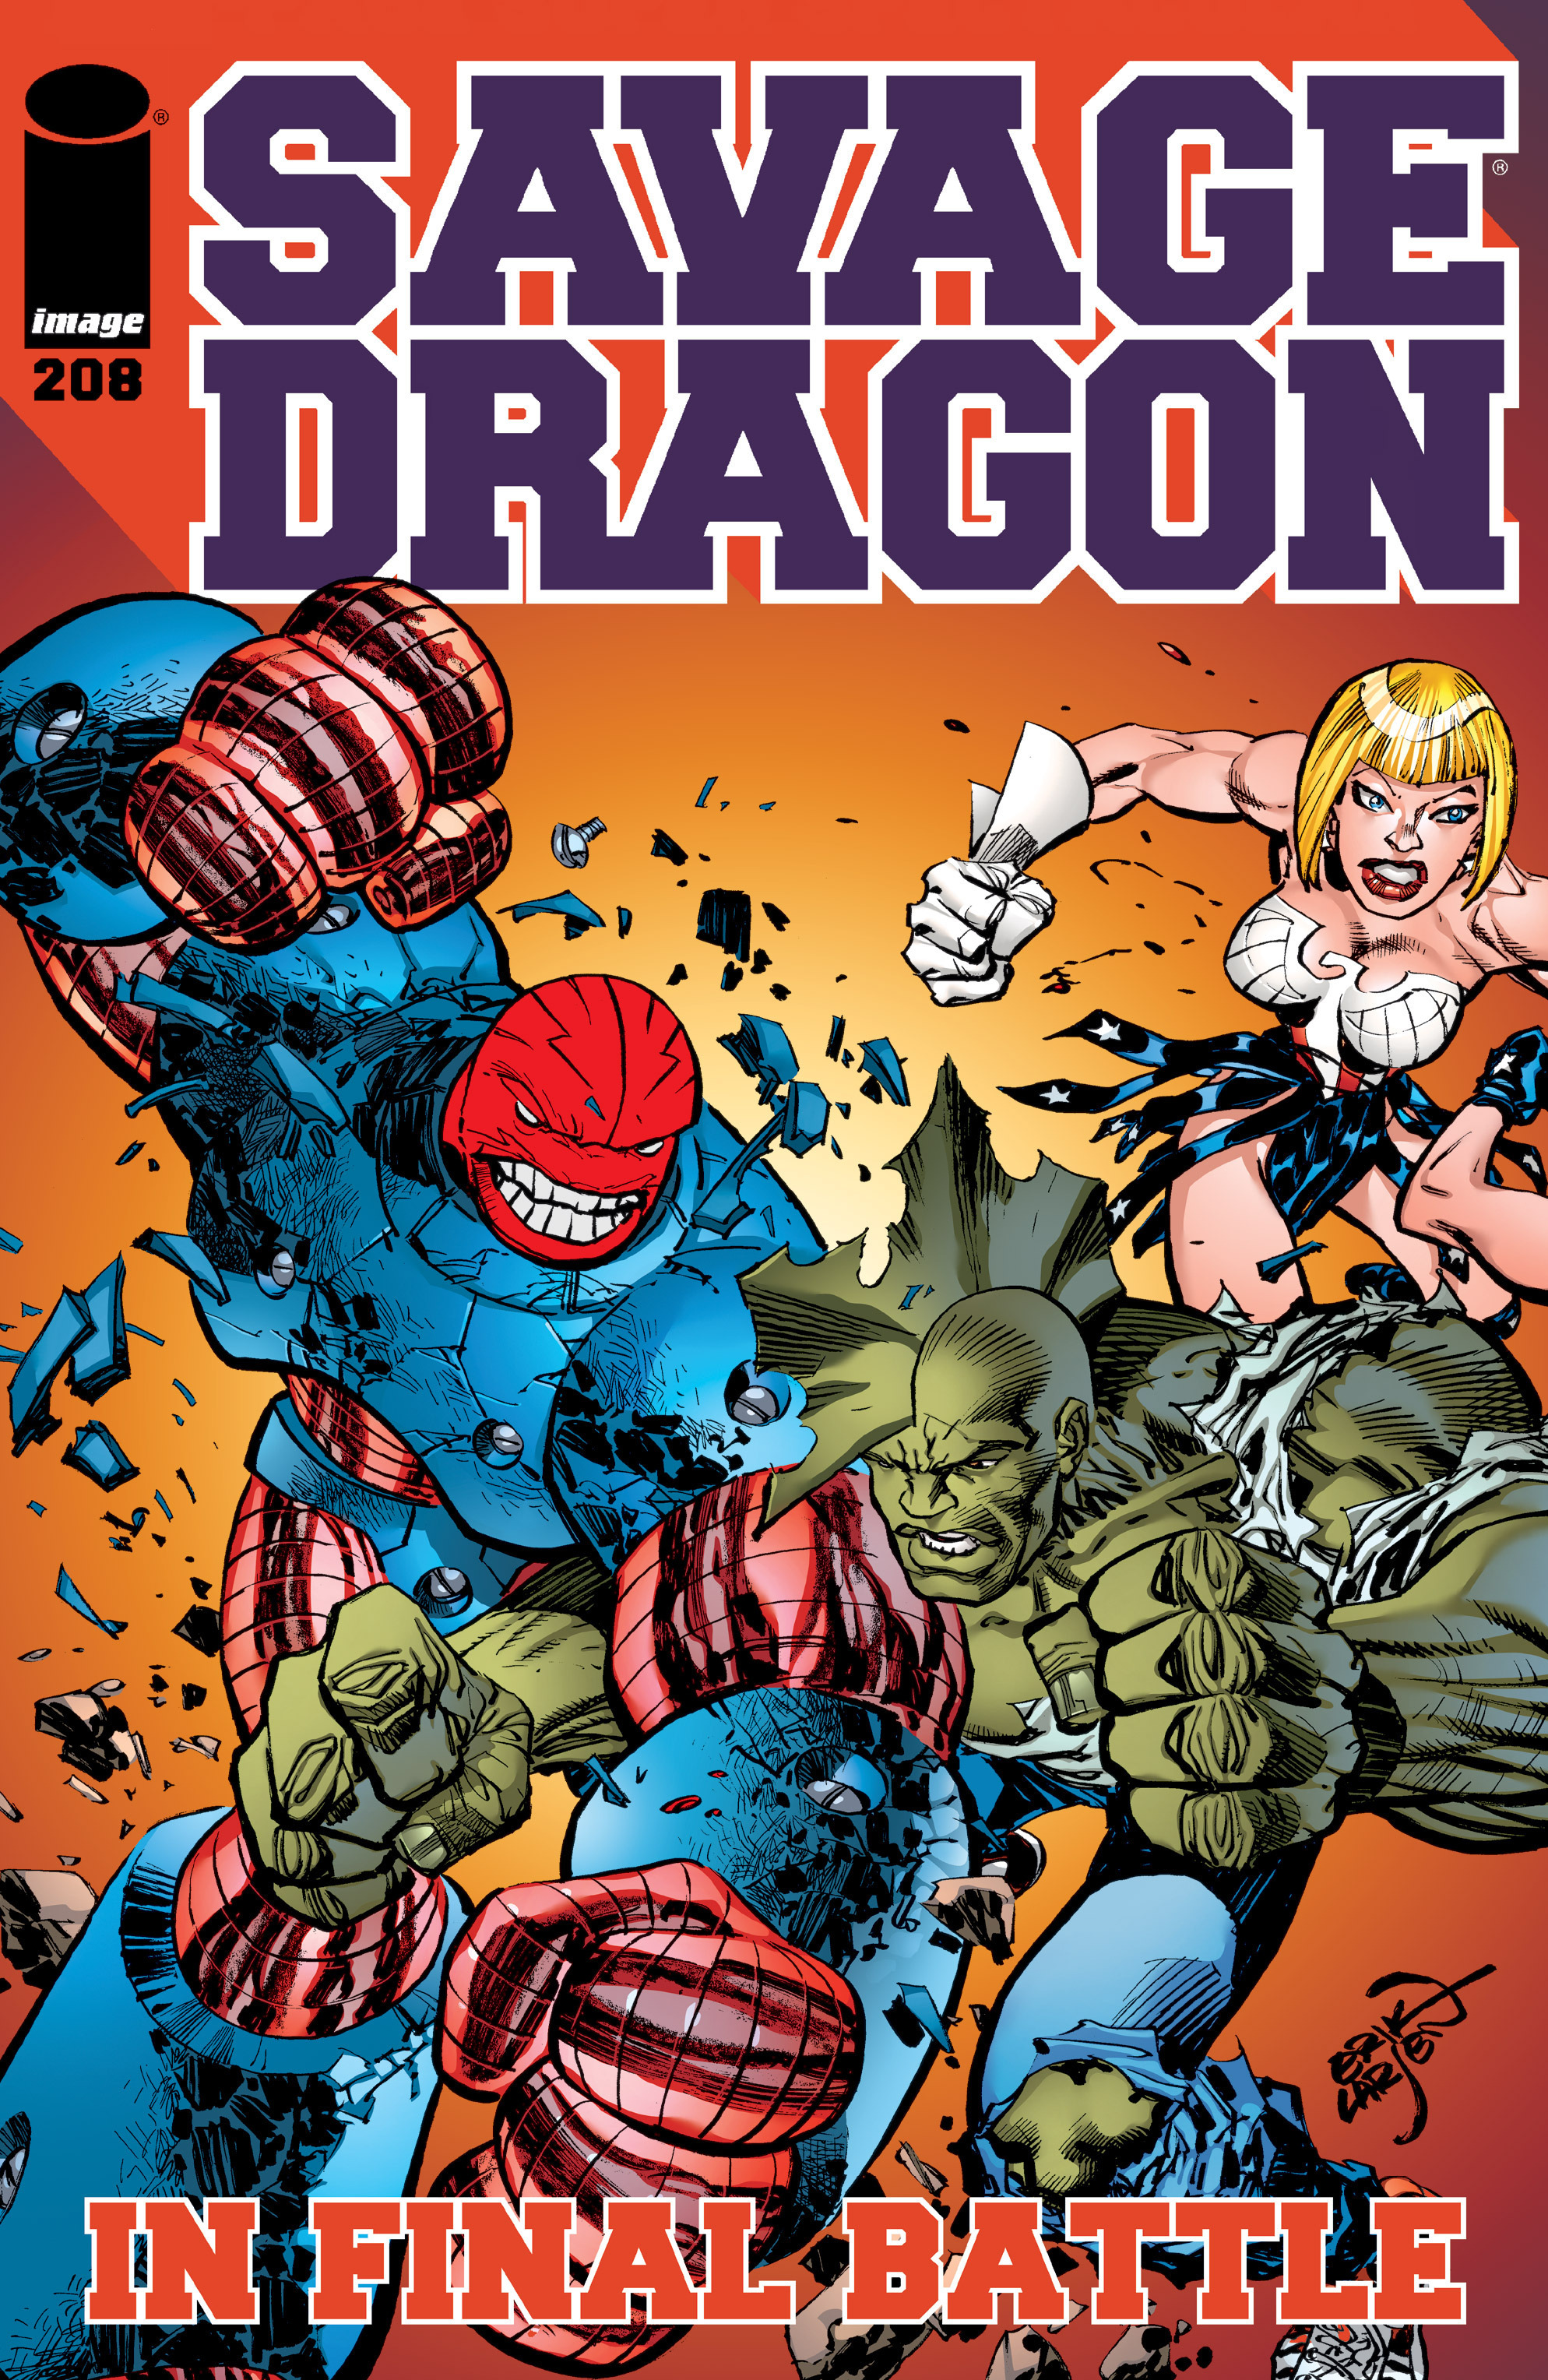 Cover Savage Dragon Vol.2 #208